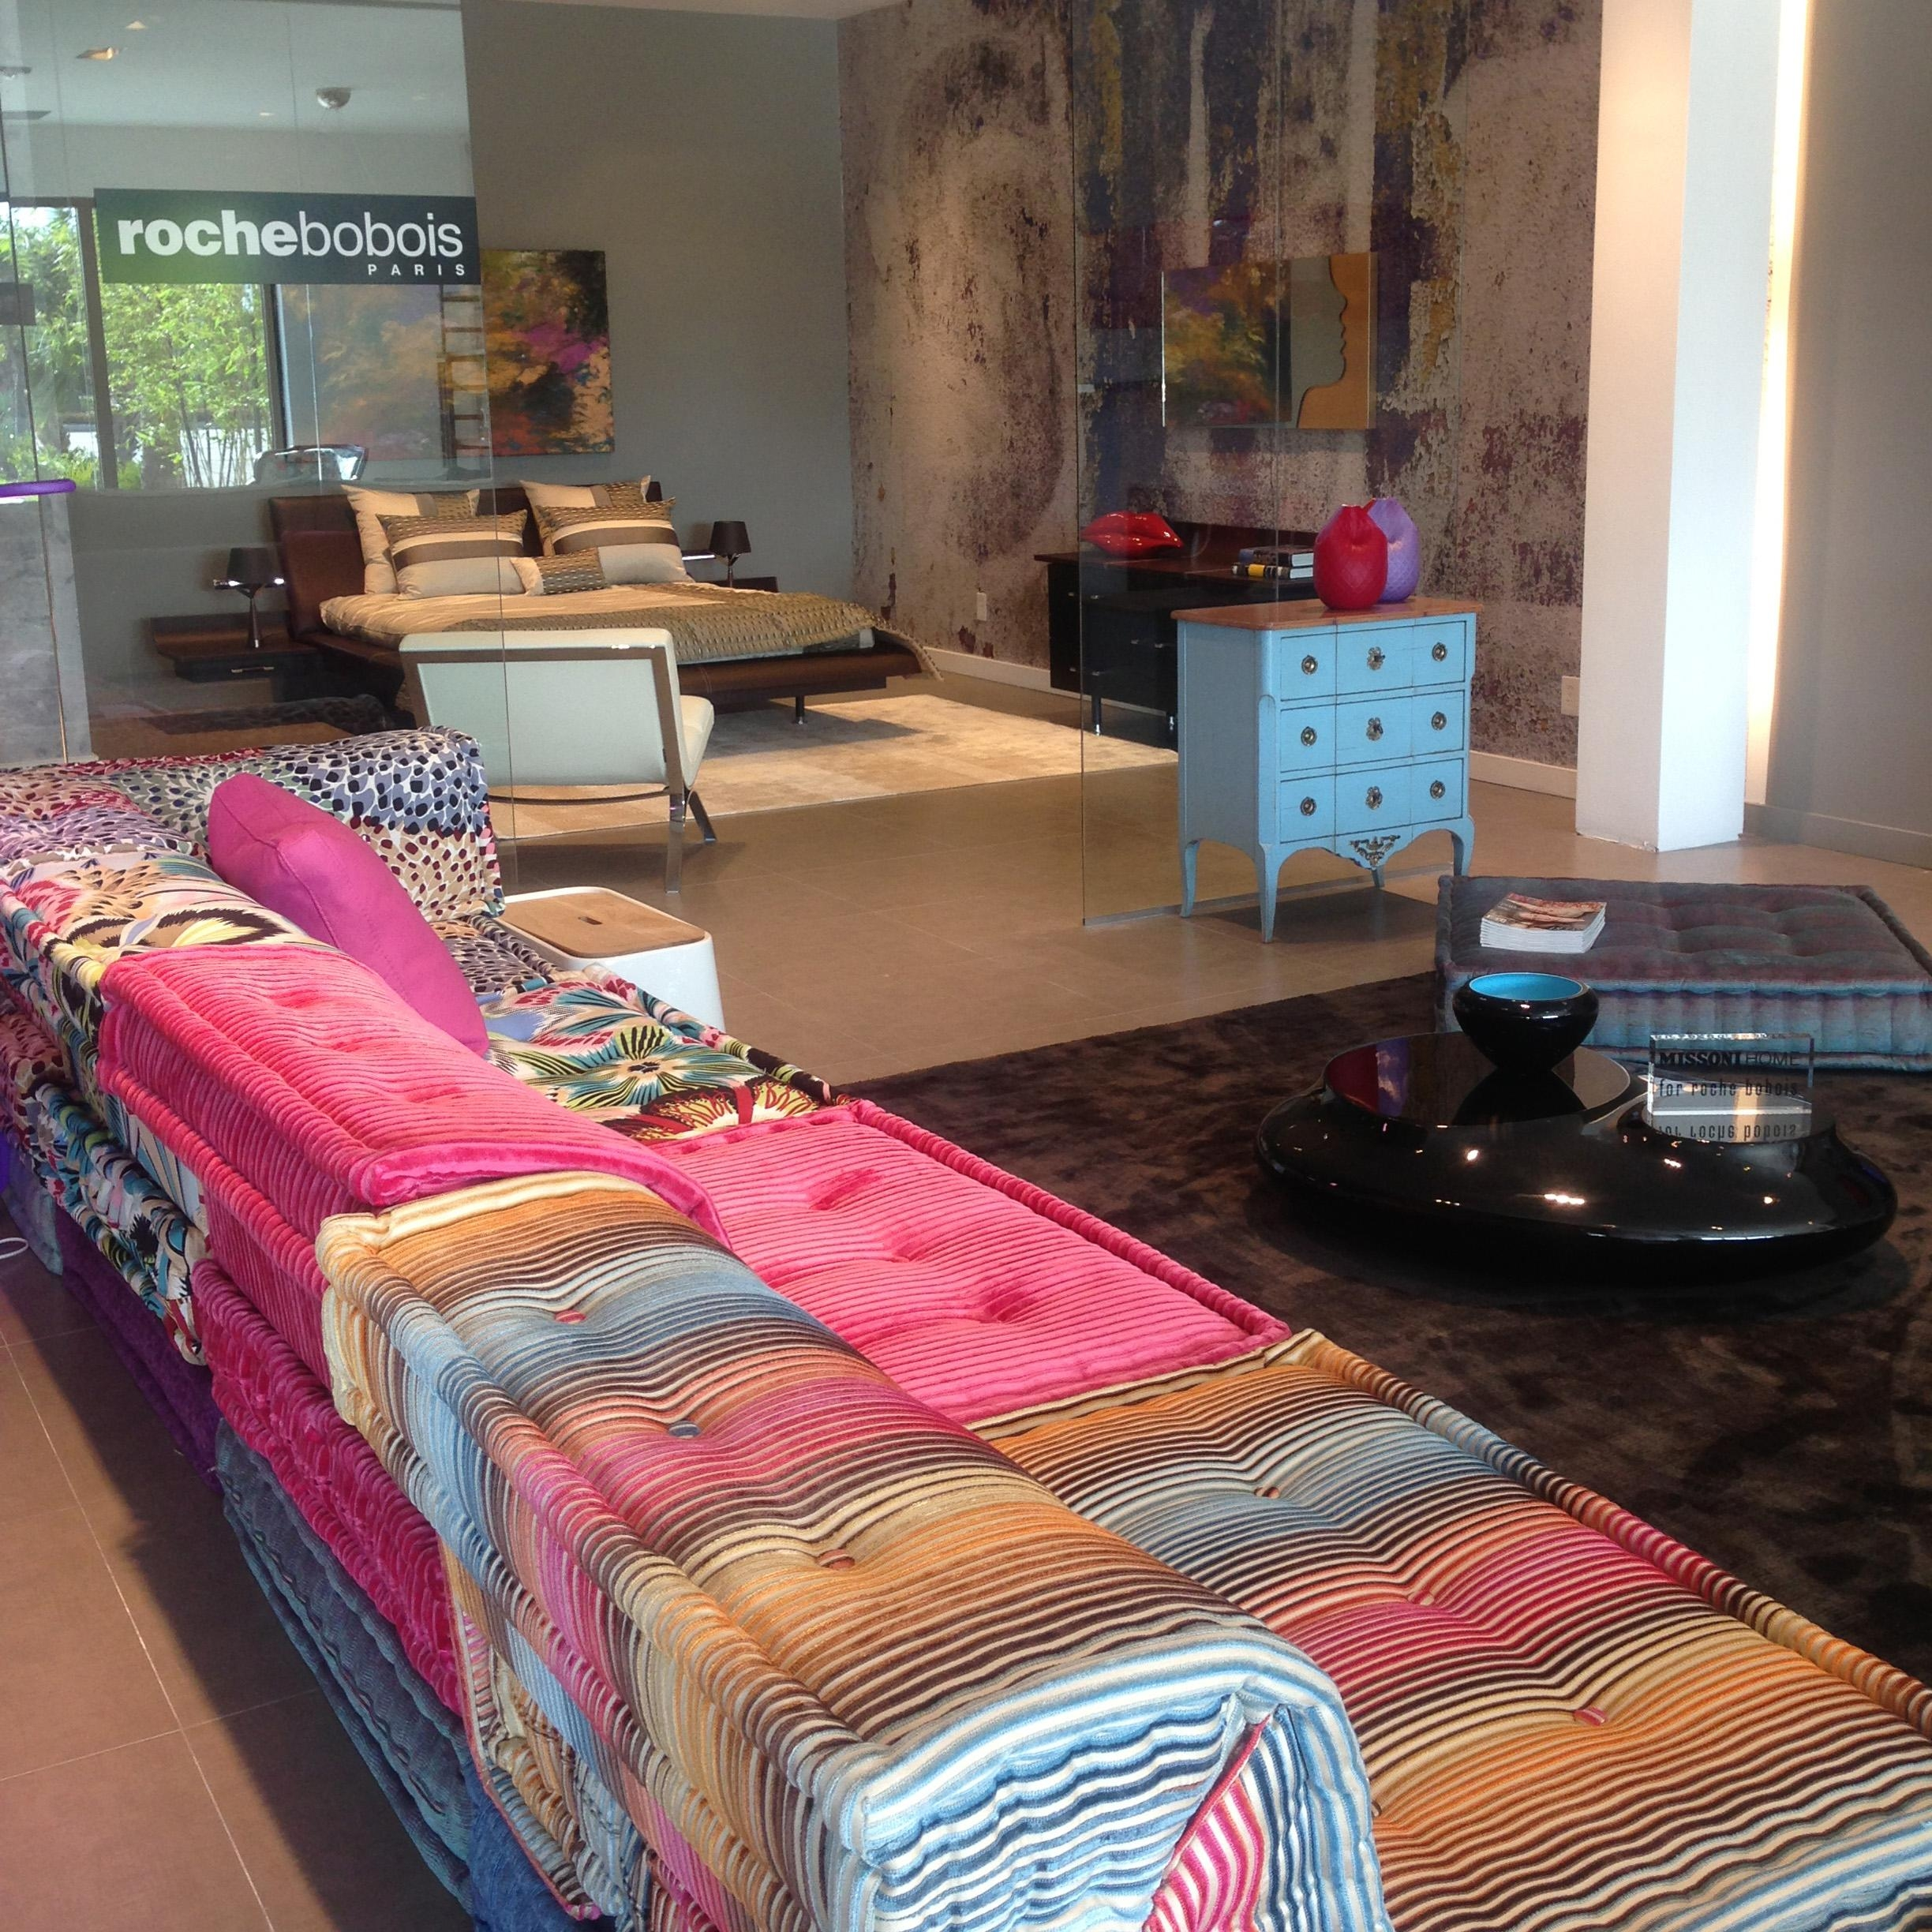 Bohemian Living Room Roche Bobois Mah Jong Modular Sofa Floor – Ftfpgh In Mahjong Sofas (View 16 of 20)